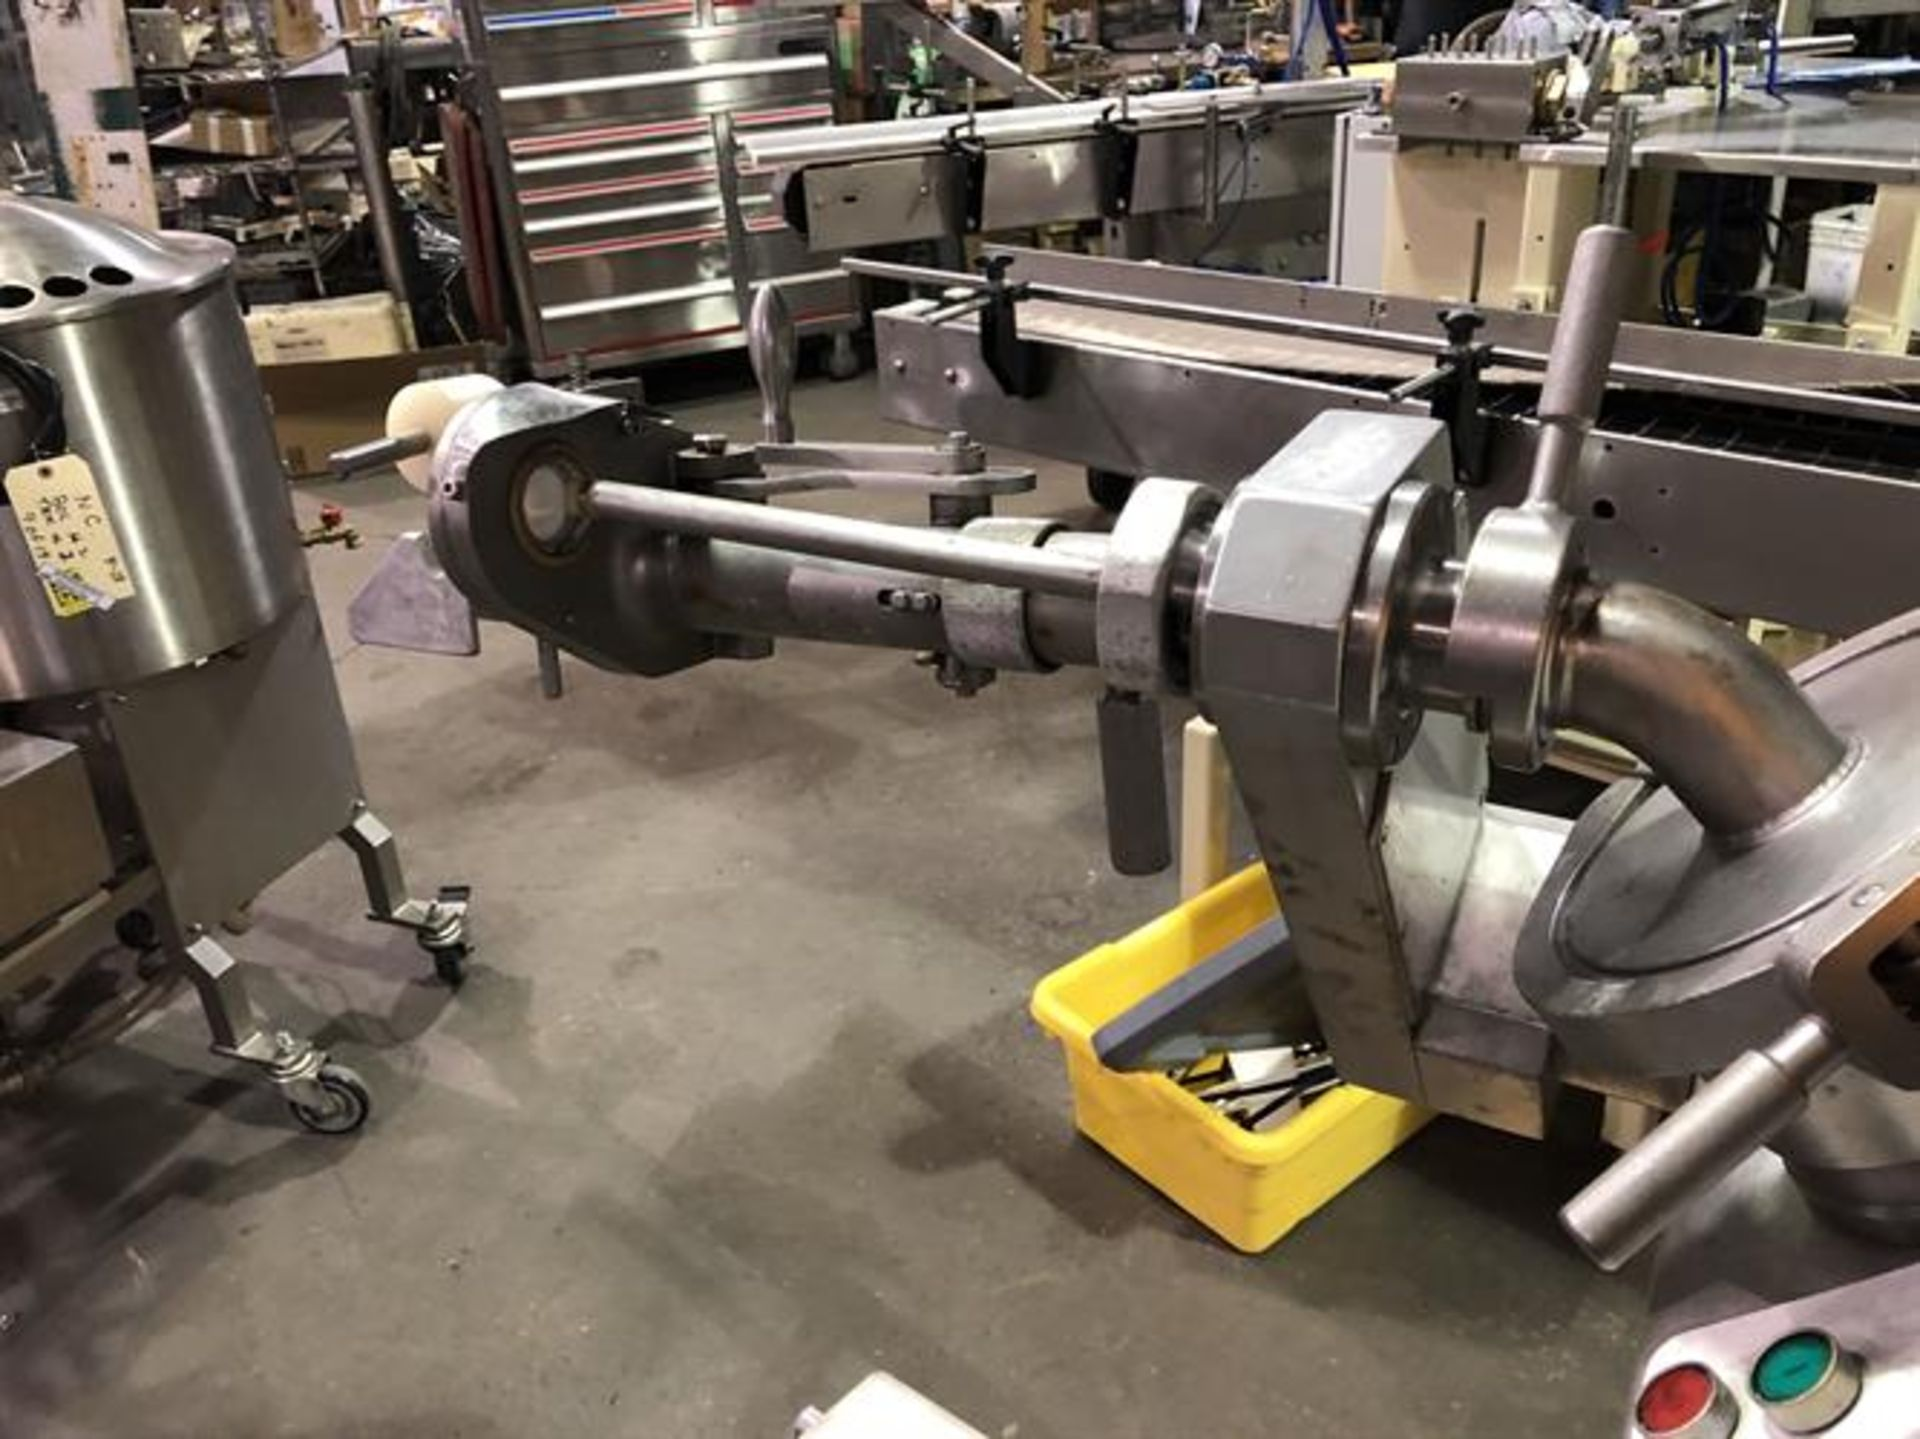 Vemag Robot 500 Stainless Steel Vacuum Stuffer - Machine has been completely reconditioned - PC - Image 17 of 31